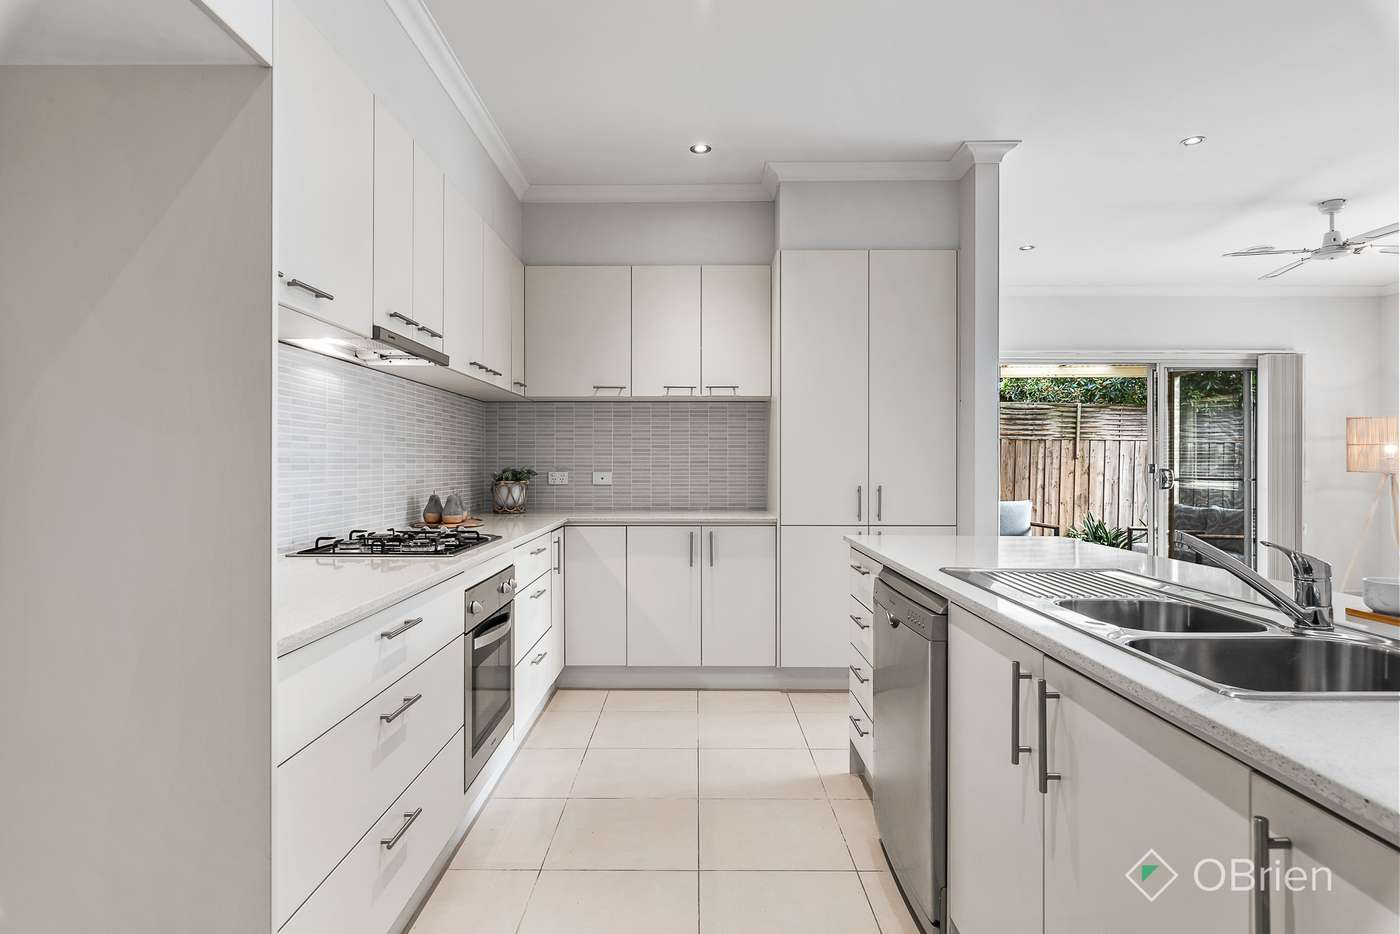 Sixth view of Homely house listing, 13 Oakland Street, Mornington VIC 3931